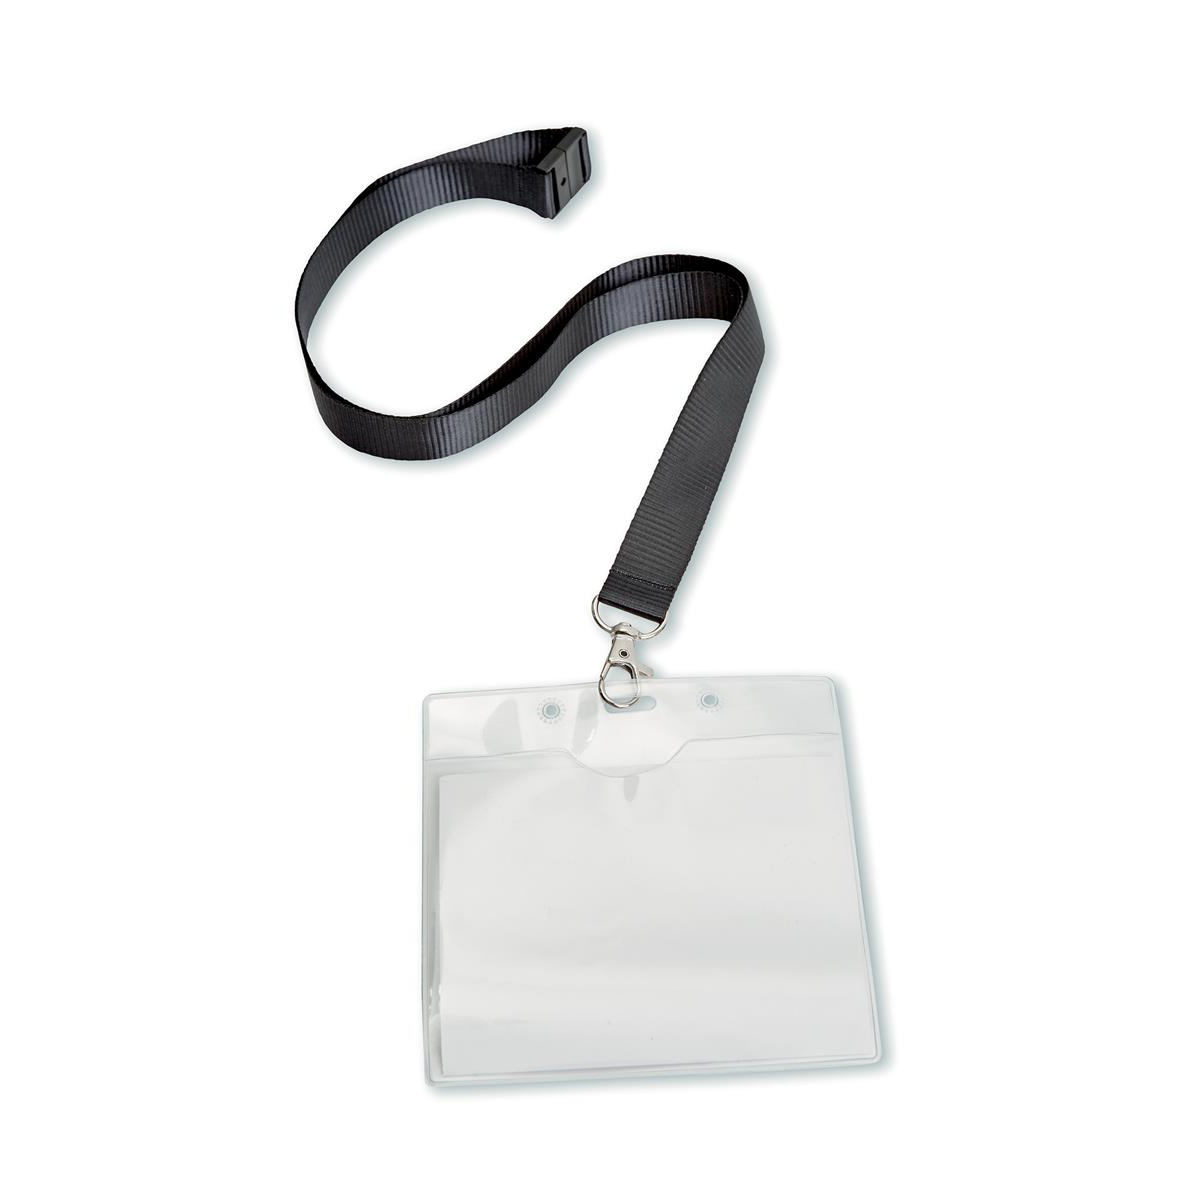 Holders 5 Star Office PVC Name Badge with Textile Lanyard 110x90mm Pack 10